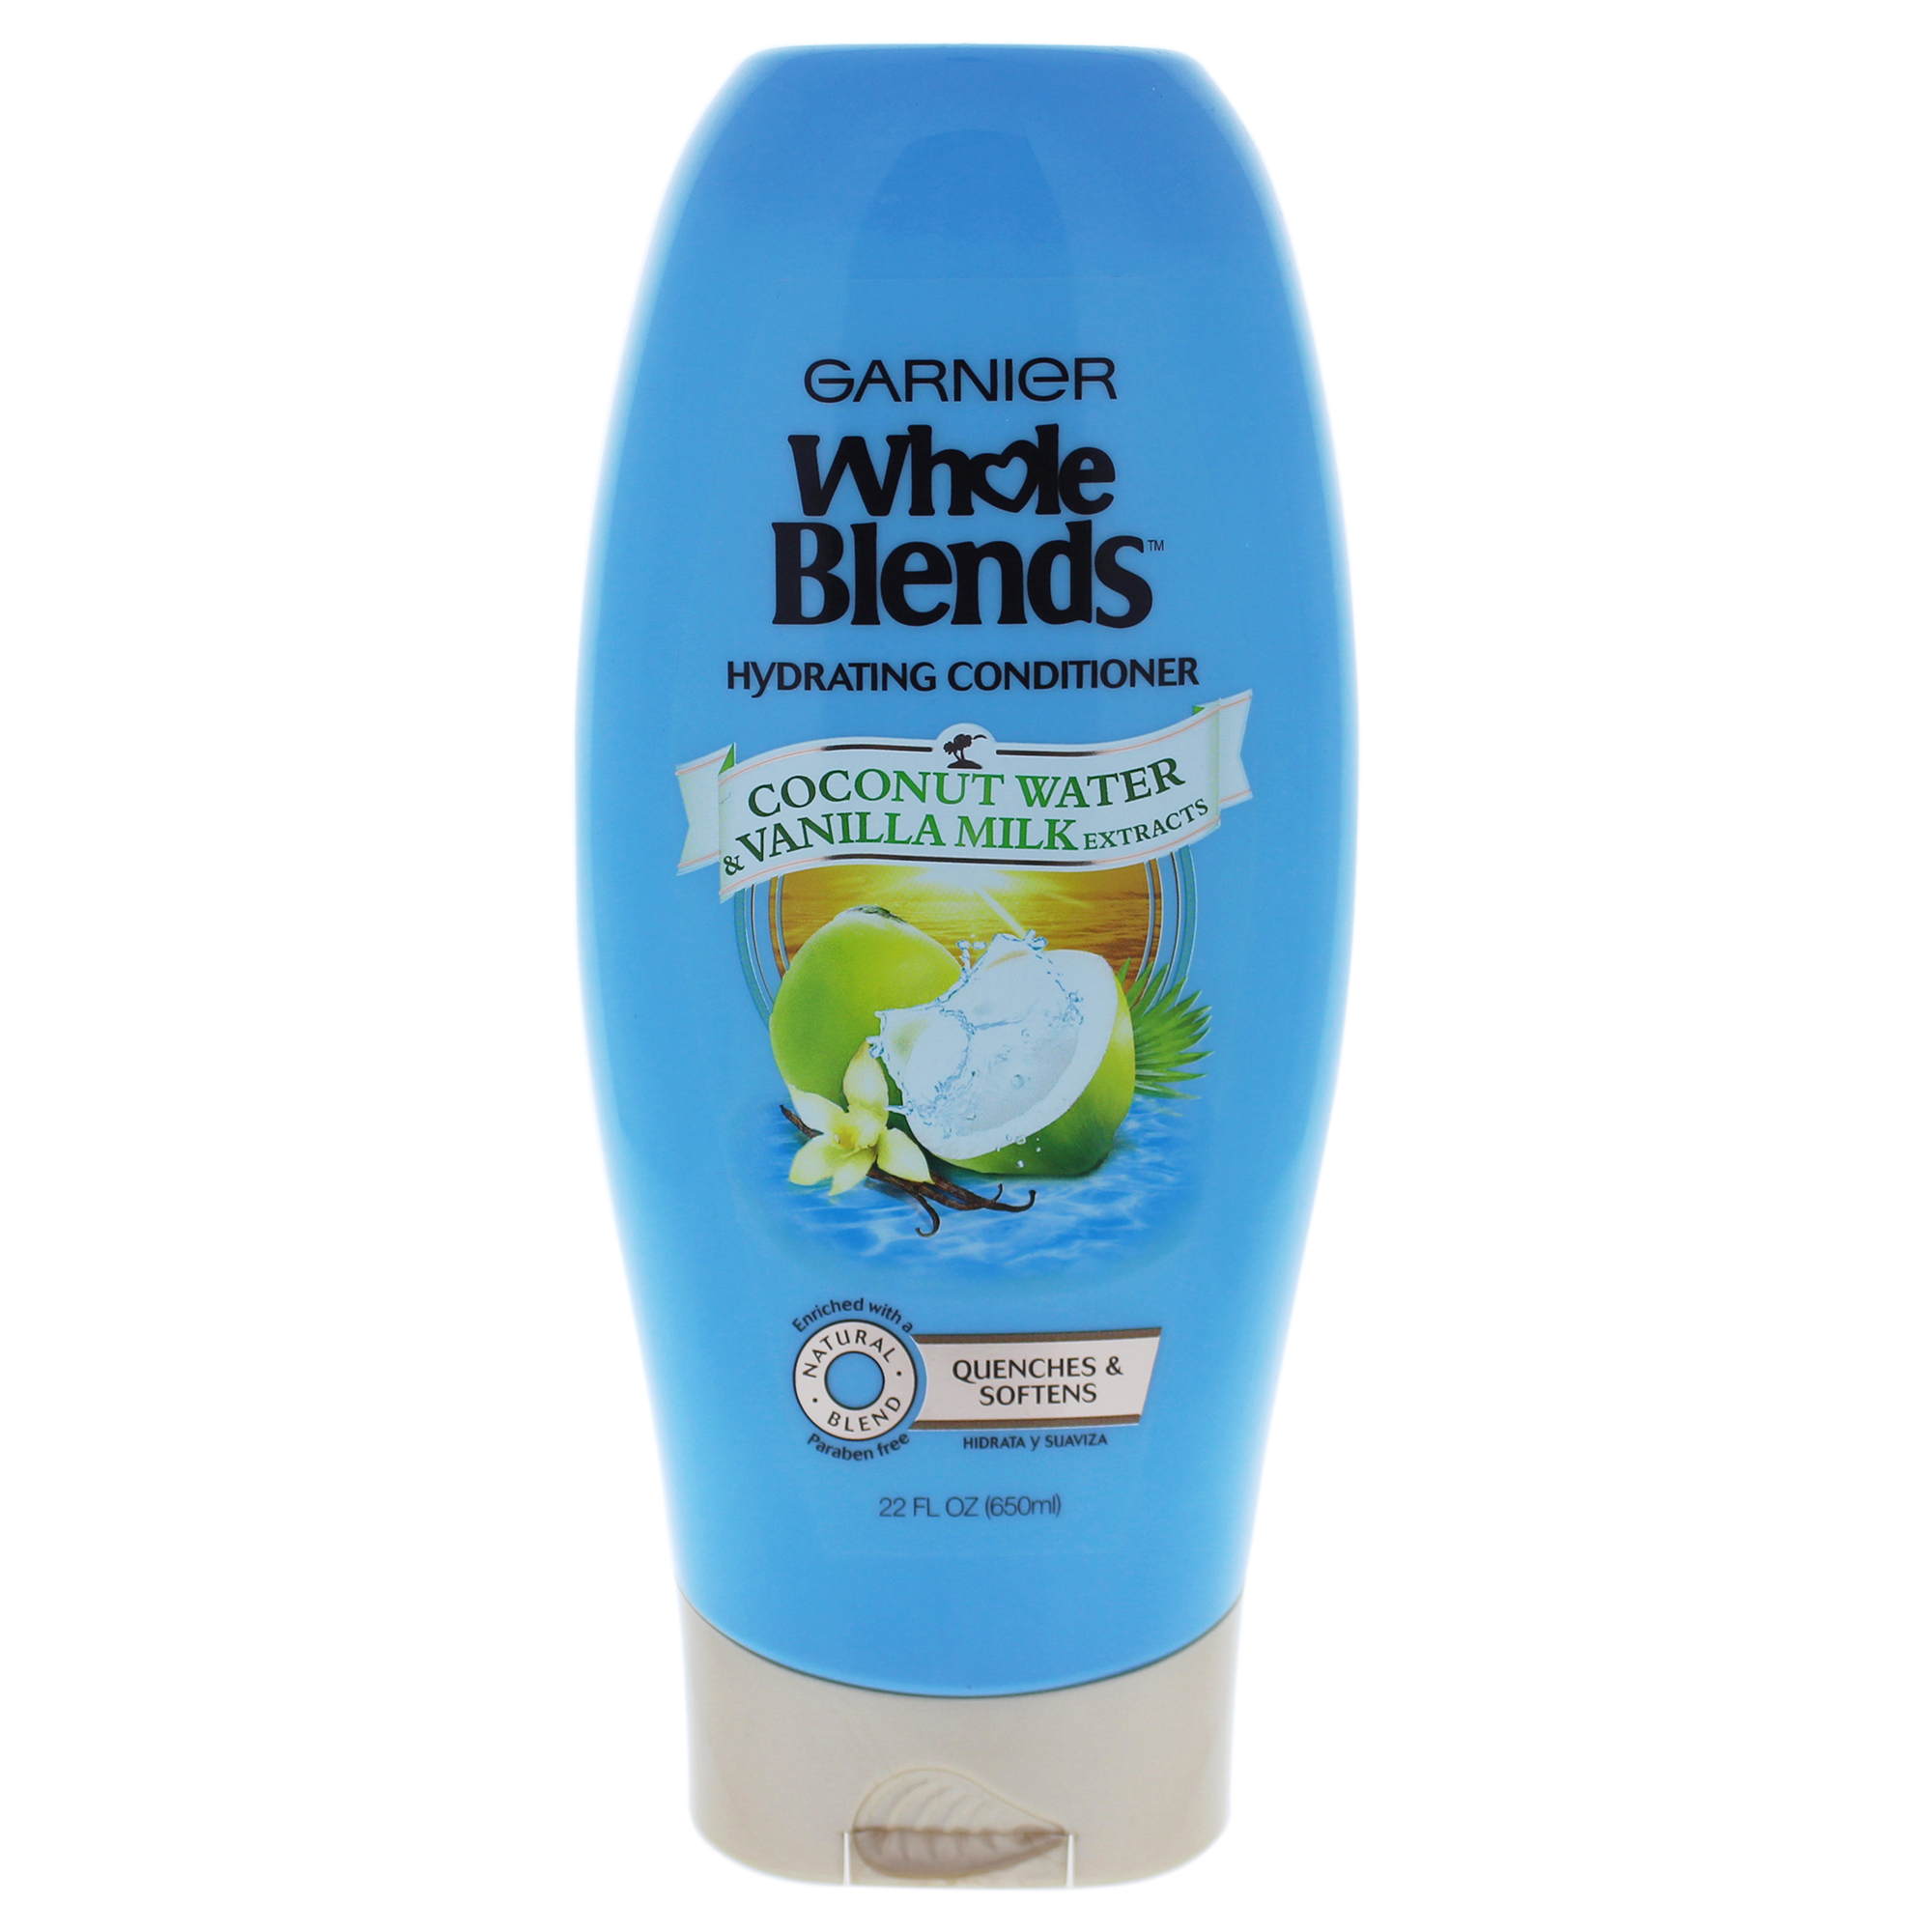 Garnier Whole Blends Conditioner with Coconut Water & Vanilla Milk Extracts 22 FL OZ